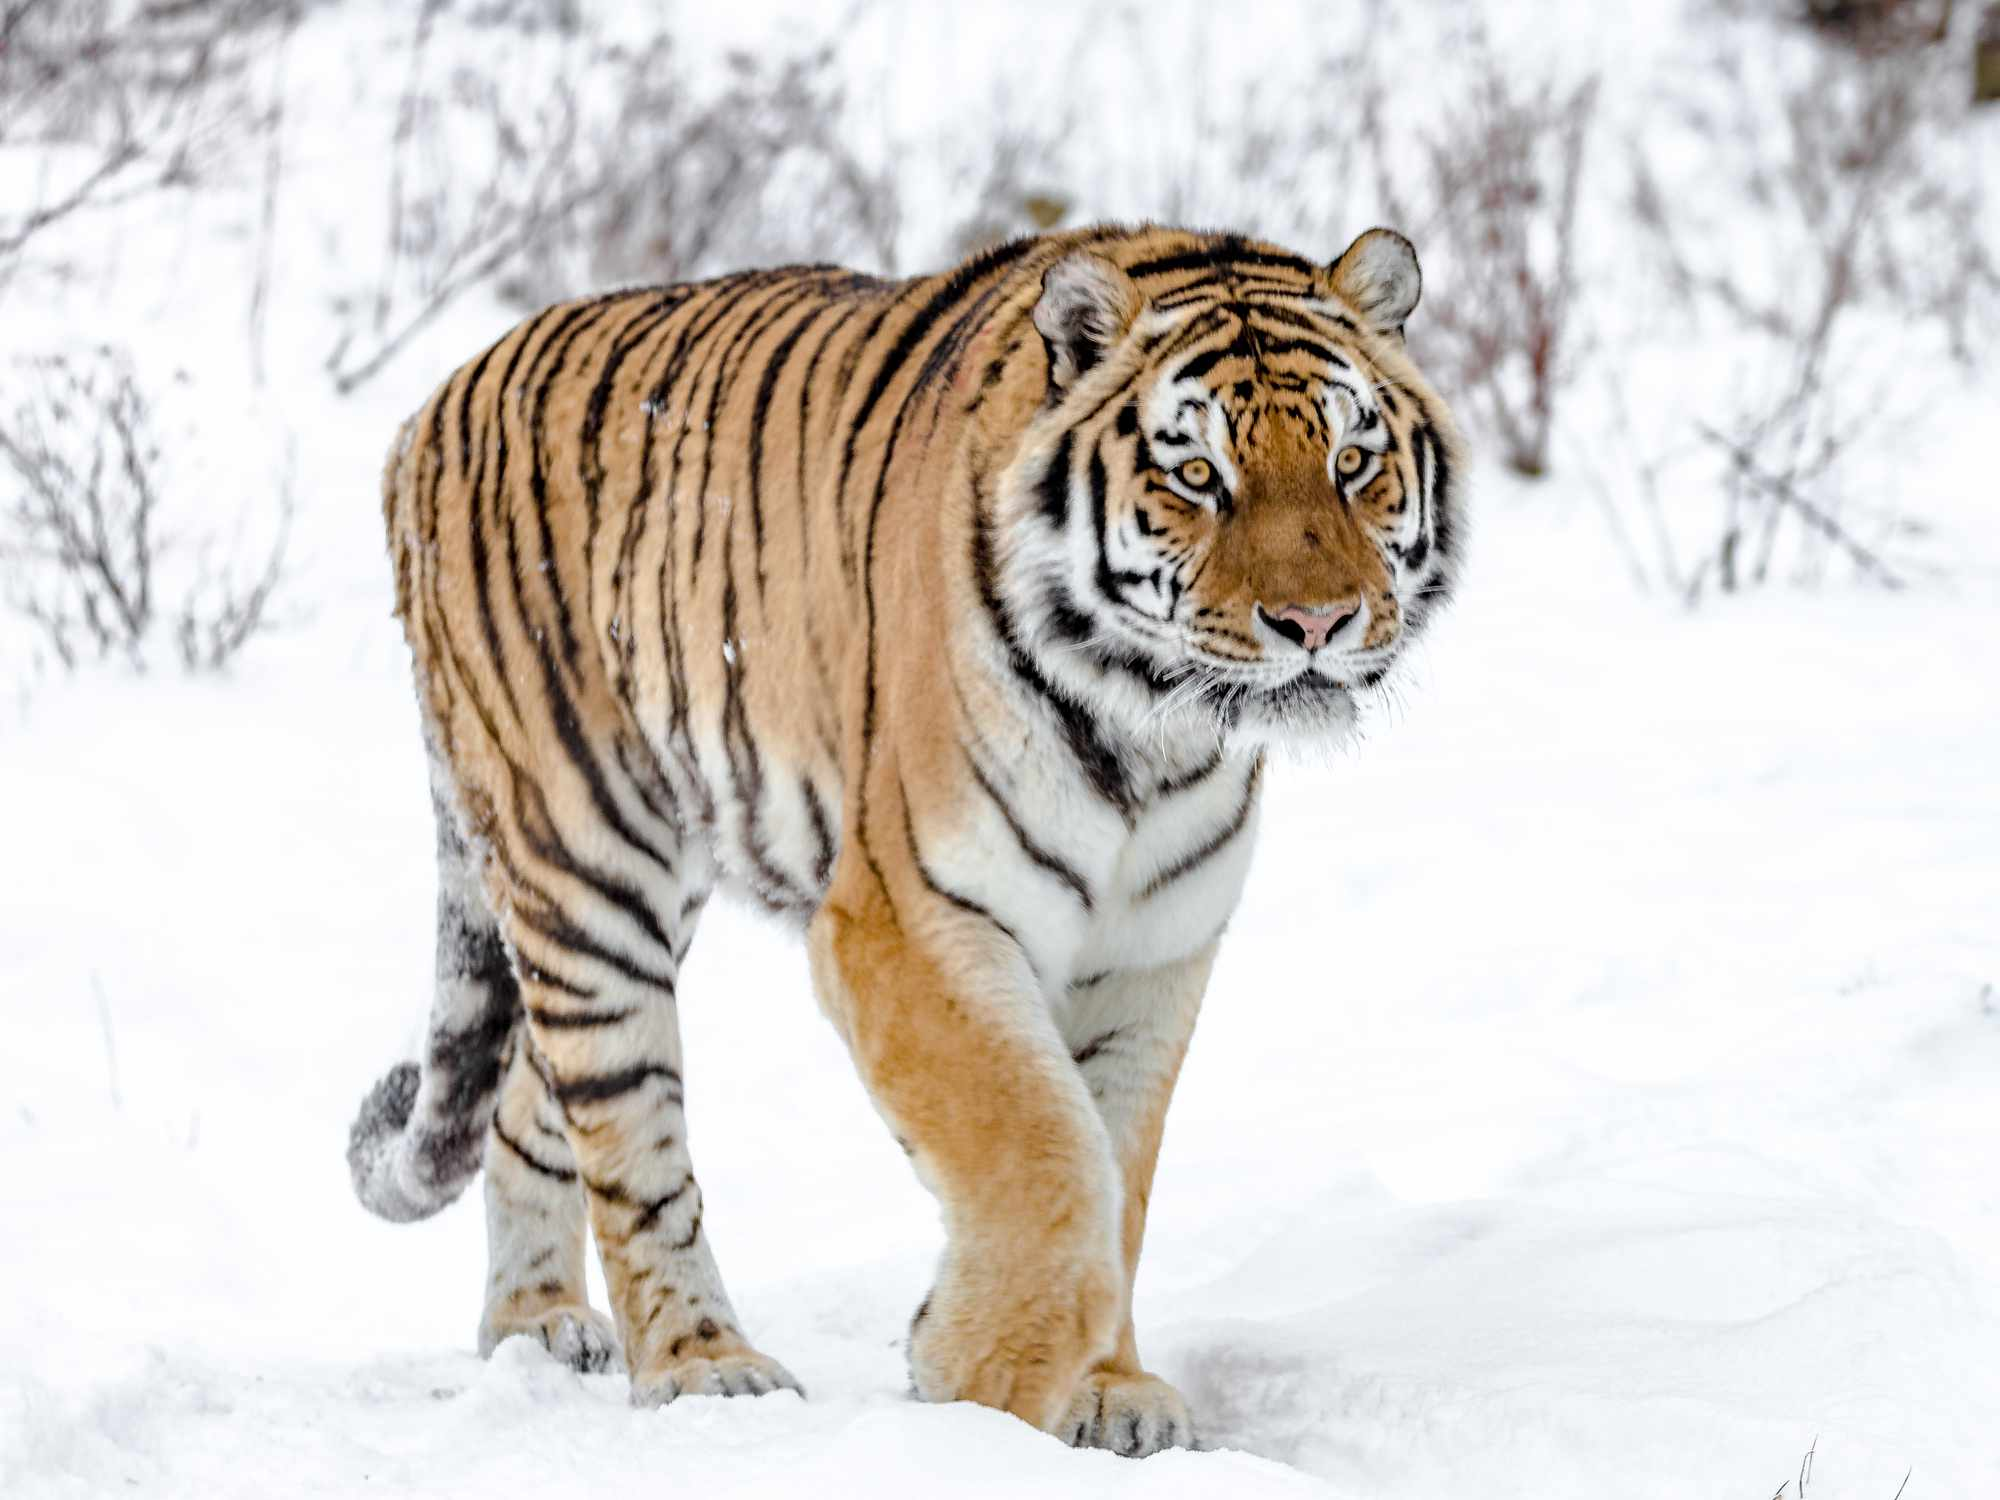 A Siberian tiger walking in the snow